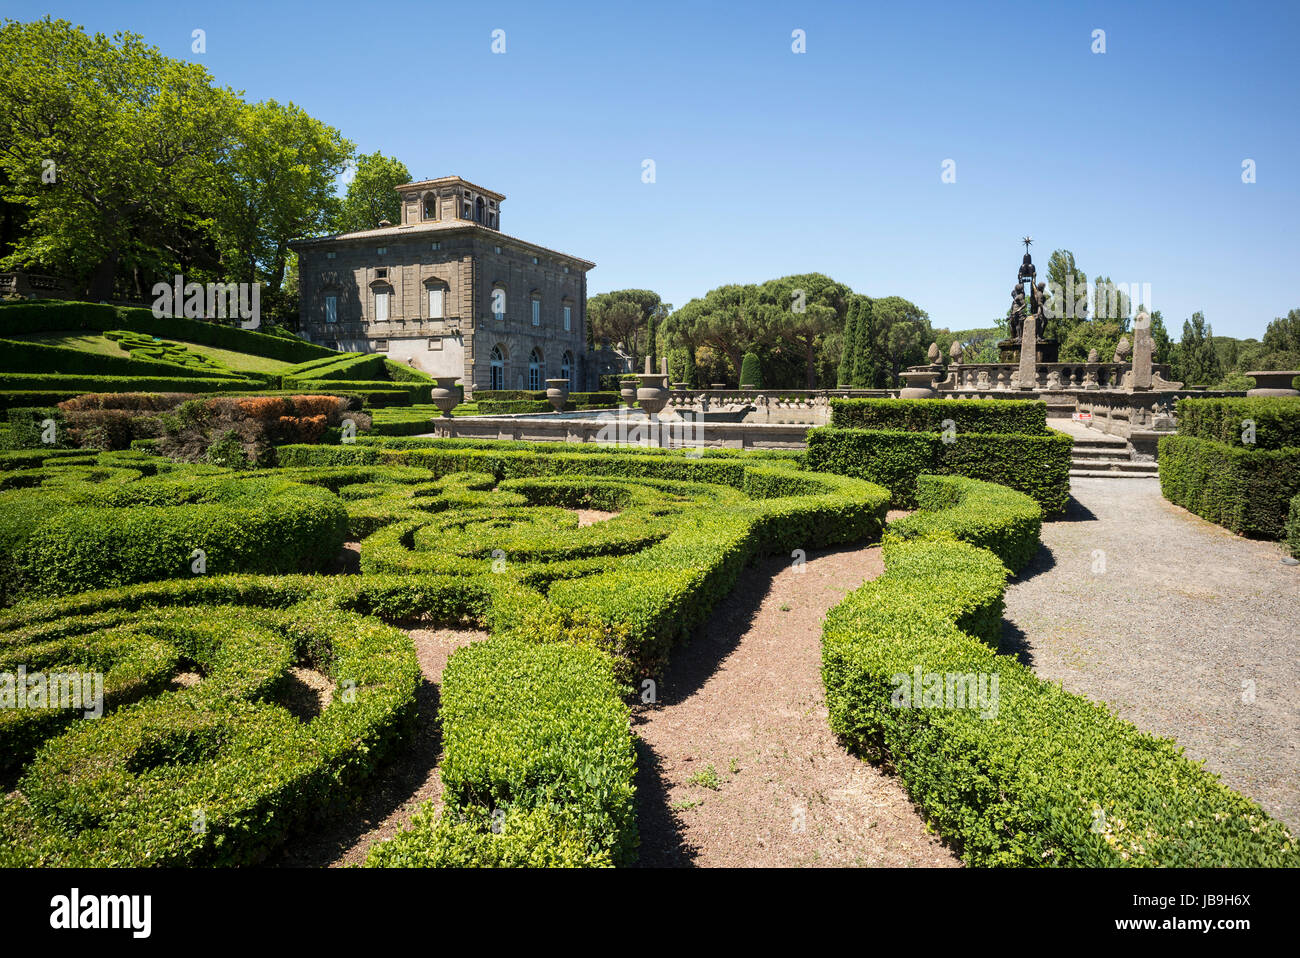 Bagnaia. Viterbo. Italy. 16th century Mannerist style Villa Lante and gardens, commissioned by Cardinal Gianfrancesco Stock Photo